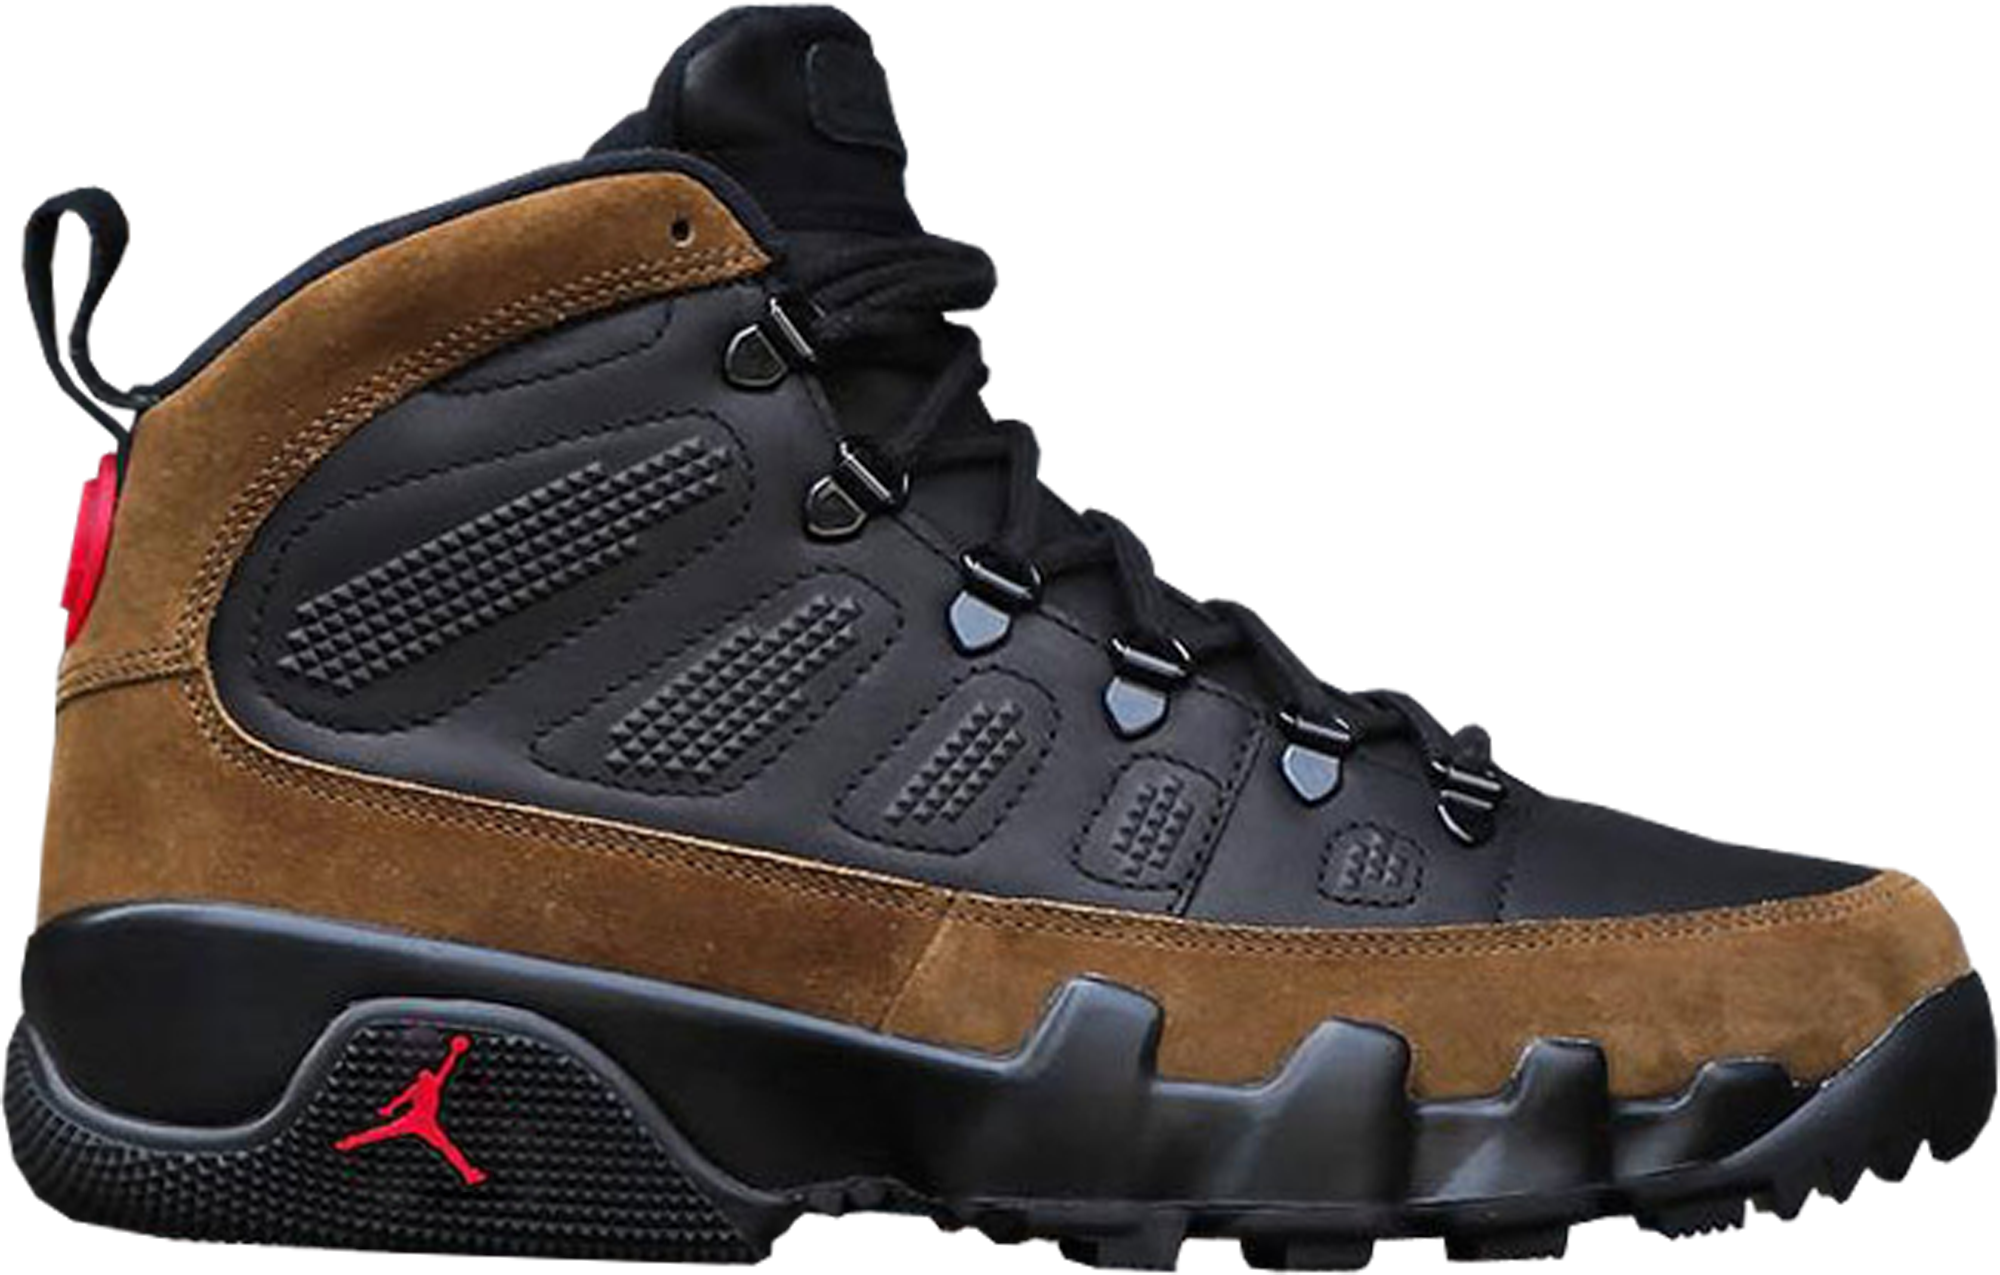 Air Jordan 9 Rétro Nrg Stock